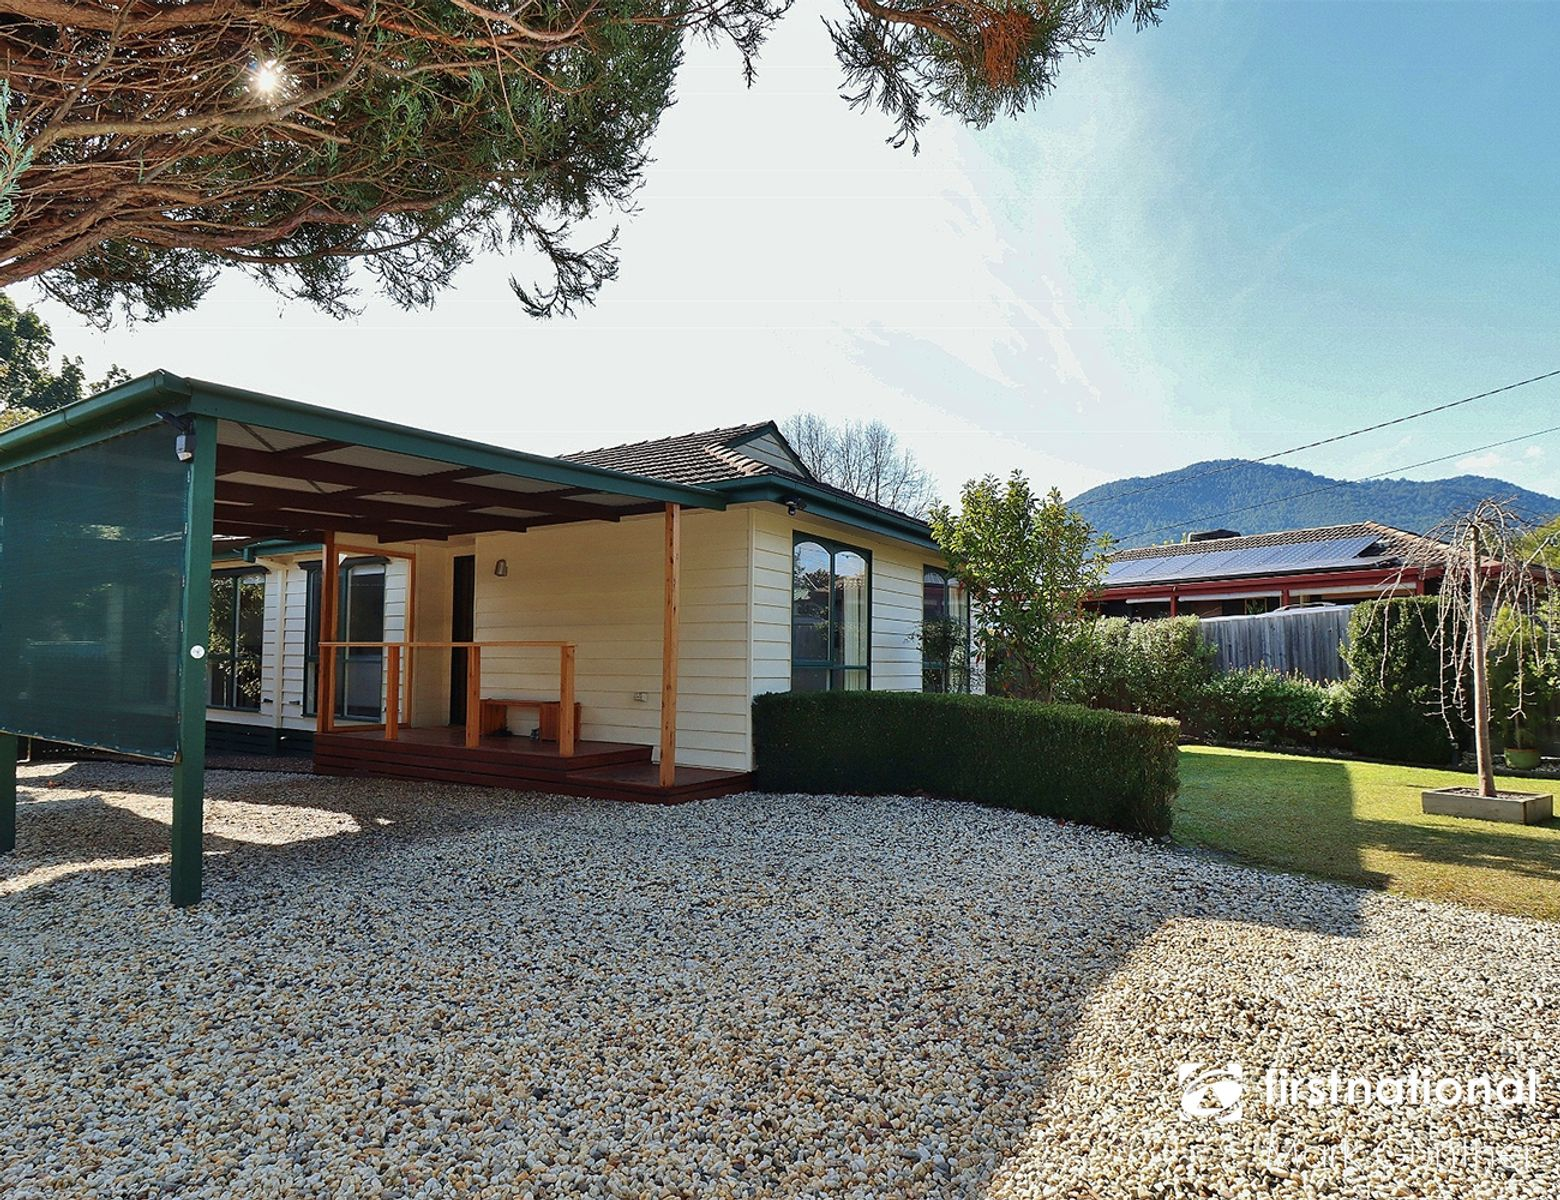 19 Wallaby Way, Healesville, VIC 3777